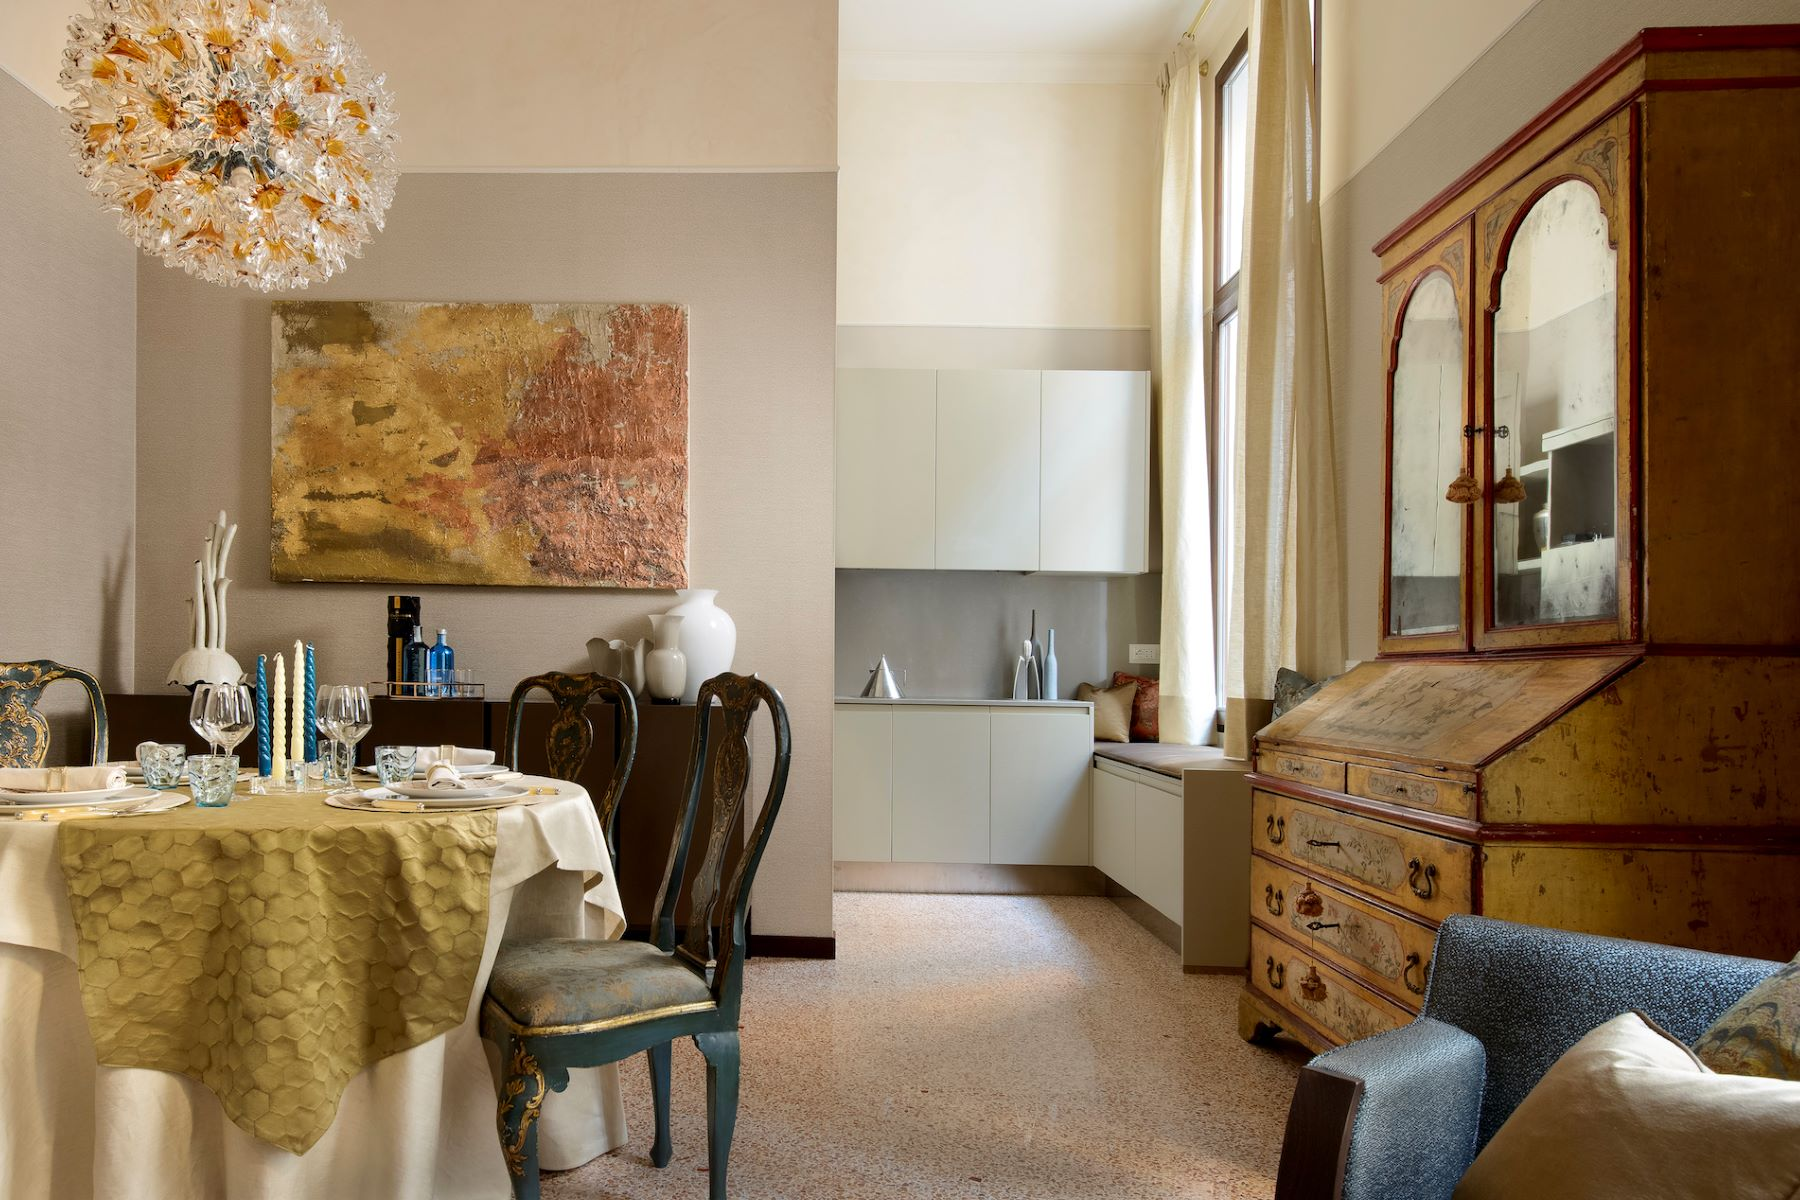 Additional photo for property listing at Vignole apartment at Palazzo Moro Venice Venice Venice, Venice 30124 Italy